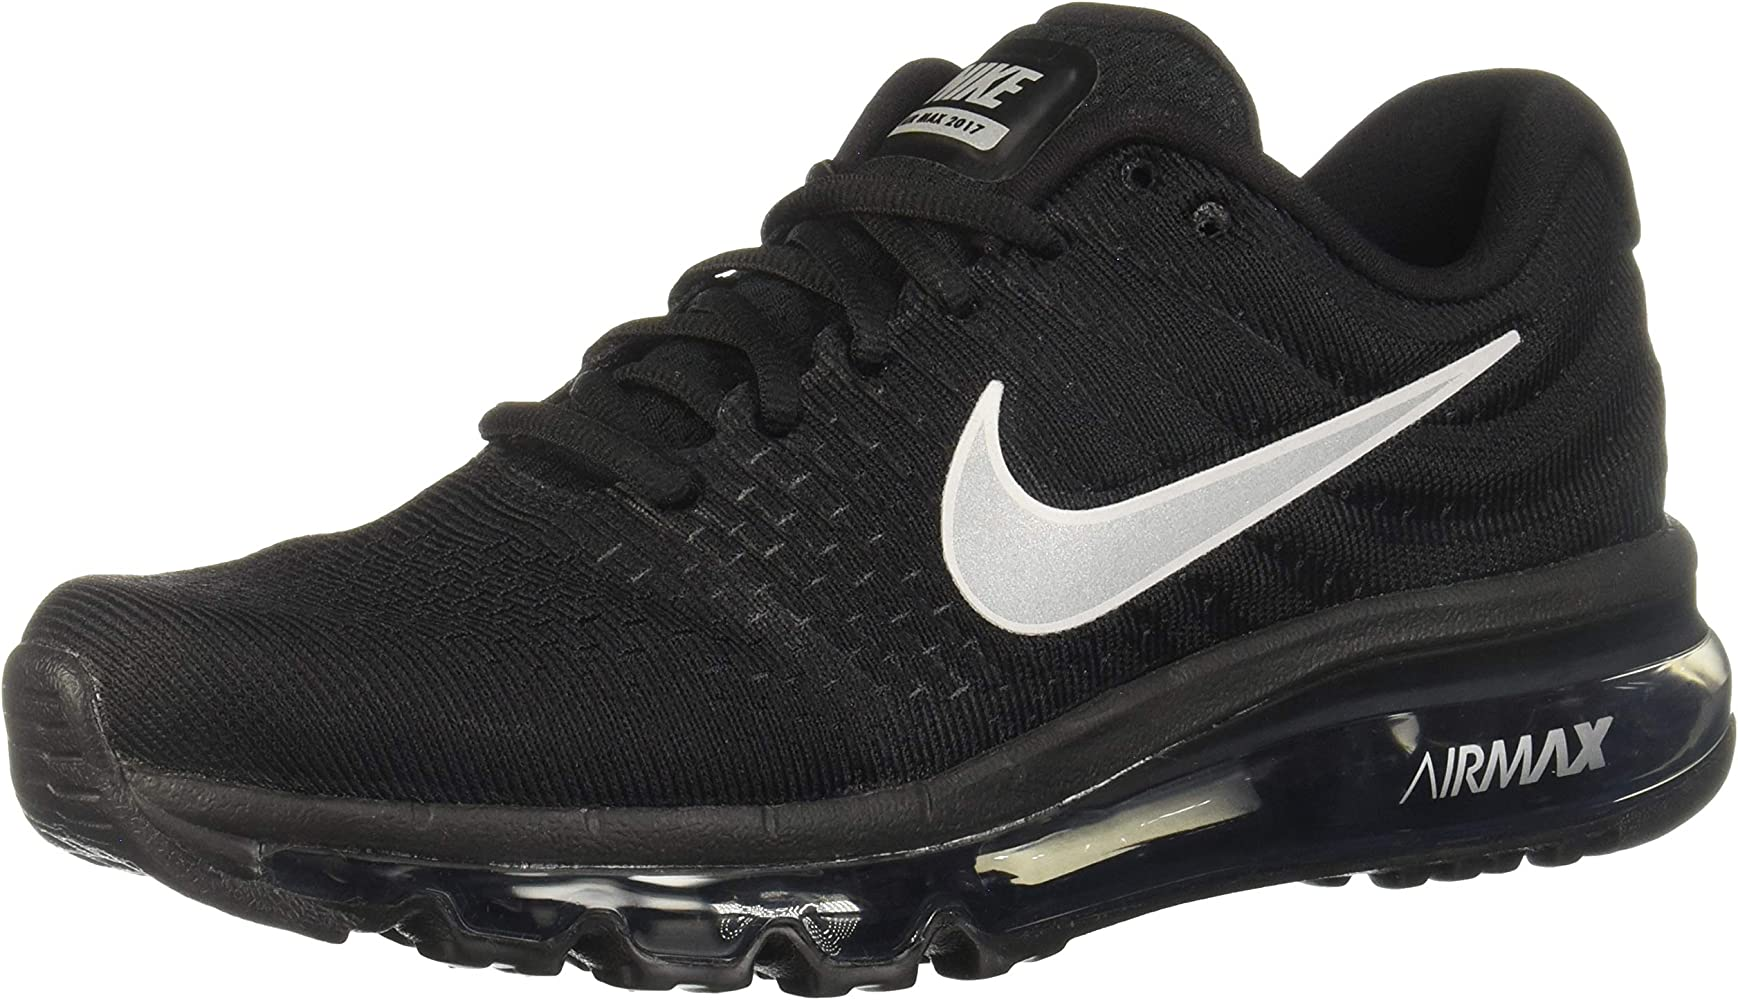 Air Max 2017 Women's Running Sneaker (6.5 B(M) US)